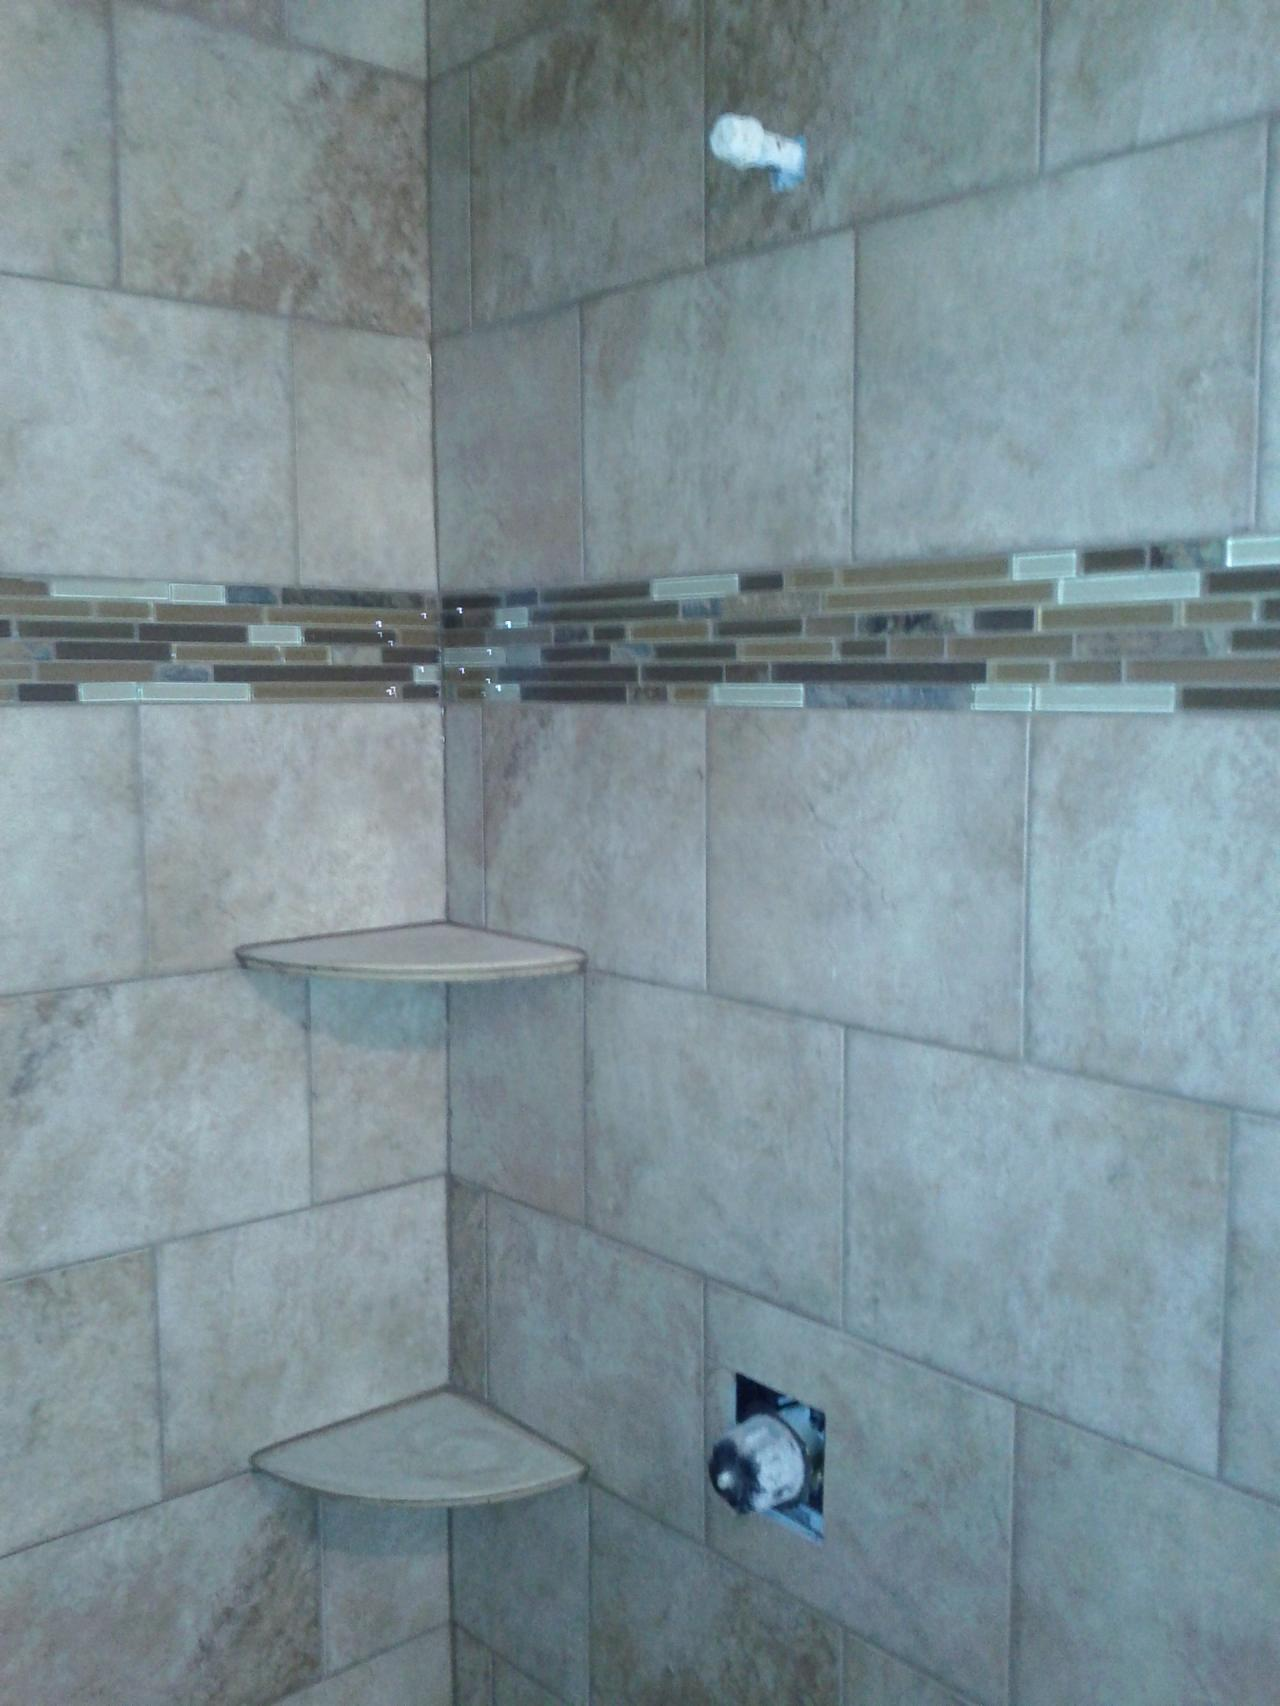 43 magnificent pictures and ideas of modern tile patterns for bathrooms Tile bathroom